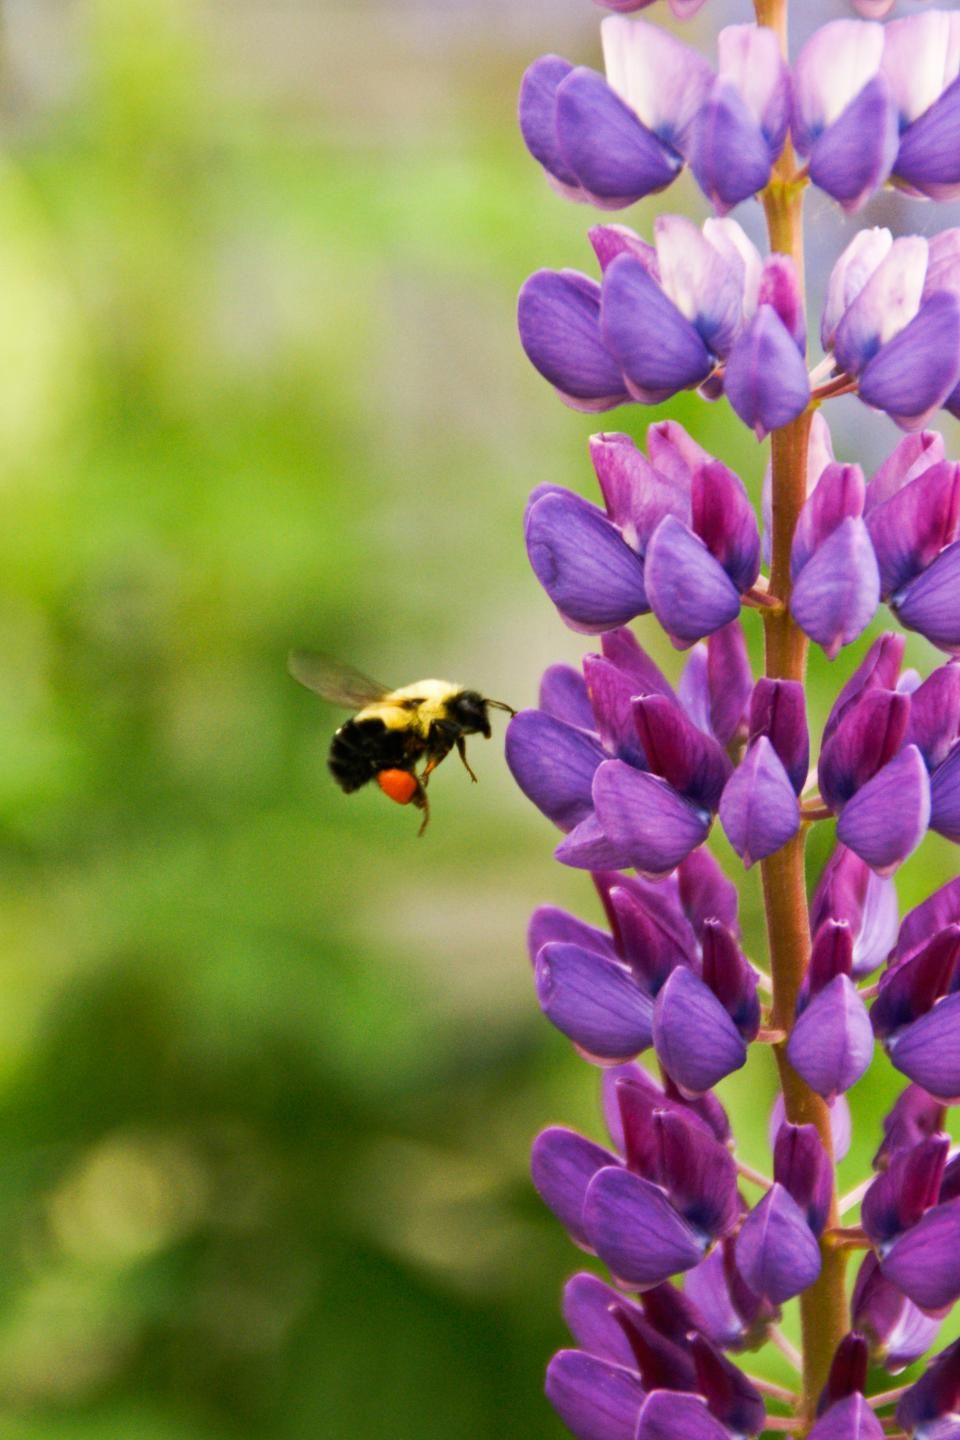 wasp, bee, stinger, wings, insect, purple, flower, nature